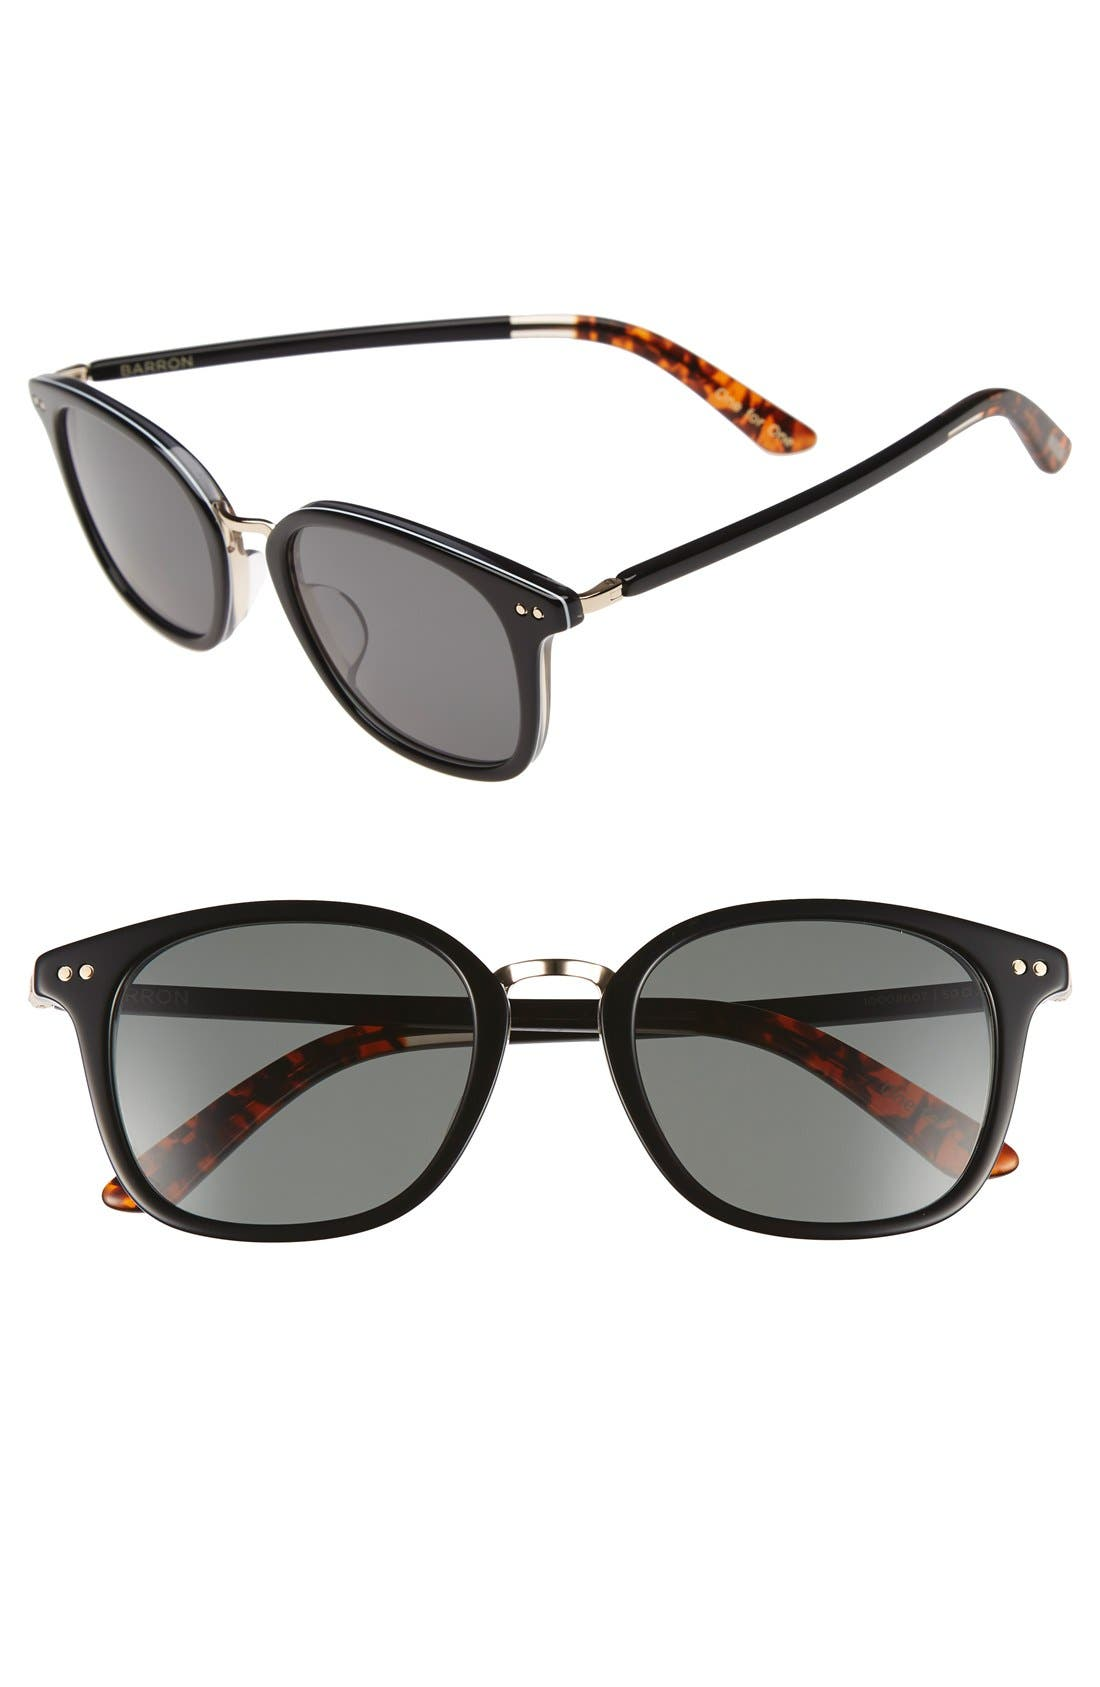 Main Image - TOMS 'Barron' 49mm Sunglasses